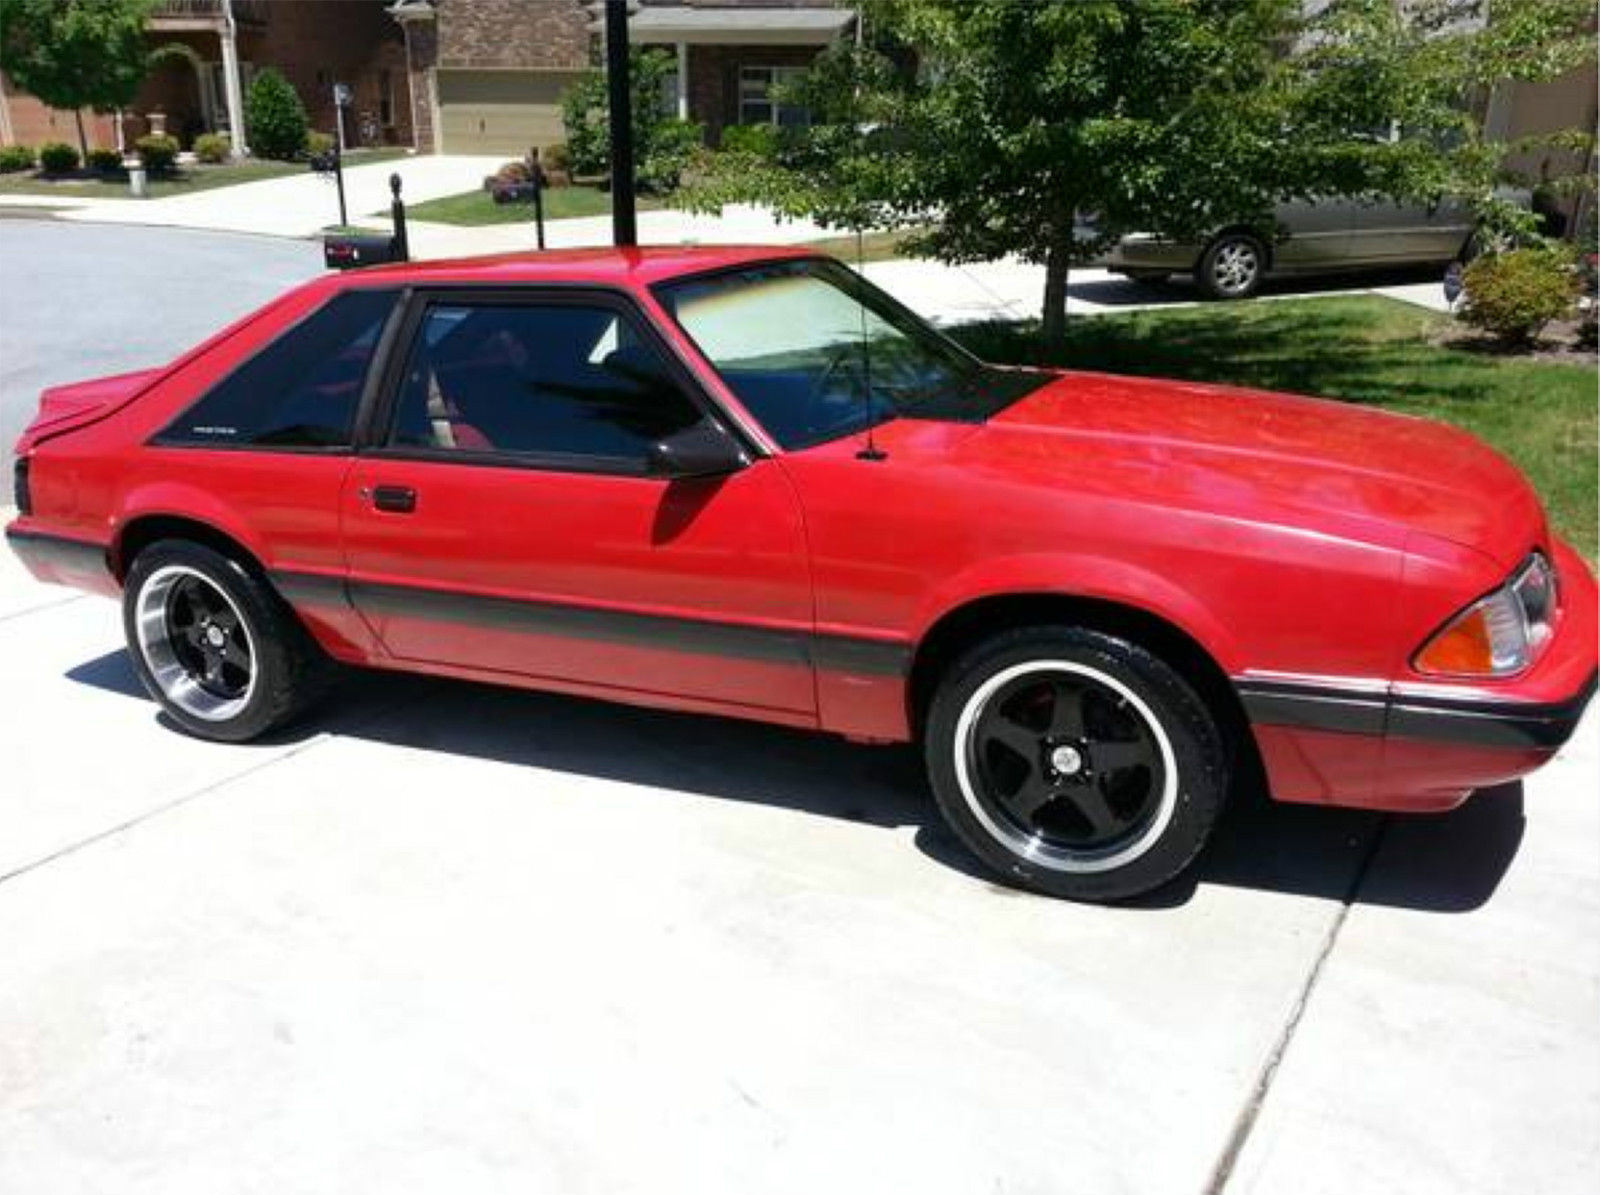 red and black 1991 ford mustang lx manual 4 cylinder 67 000 miles for sale in tucker georgia. Black Bedroom Furniture Sets. Home Design Ideas